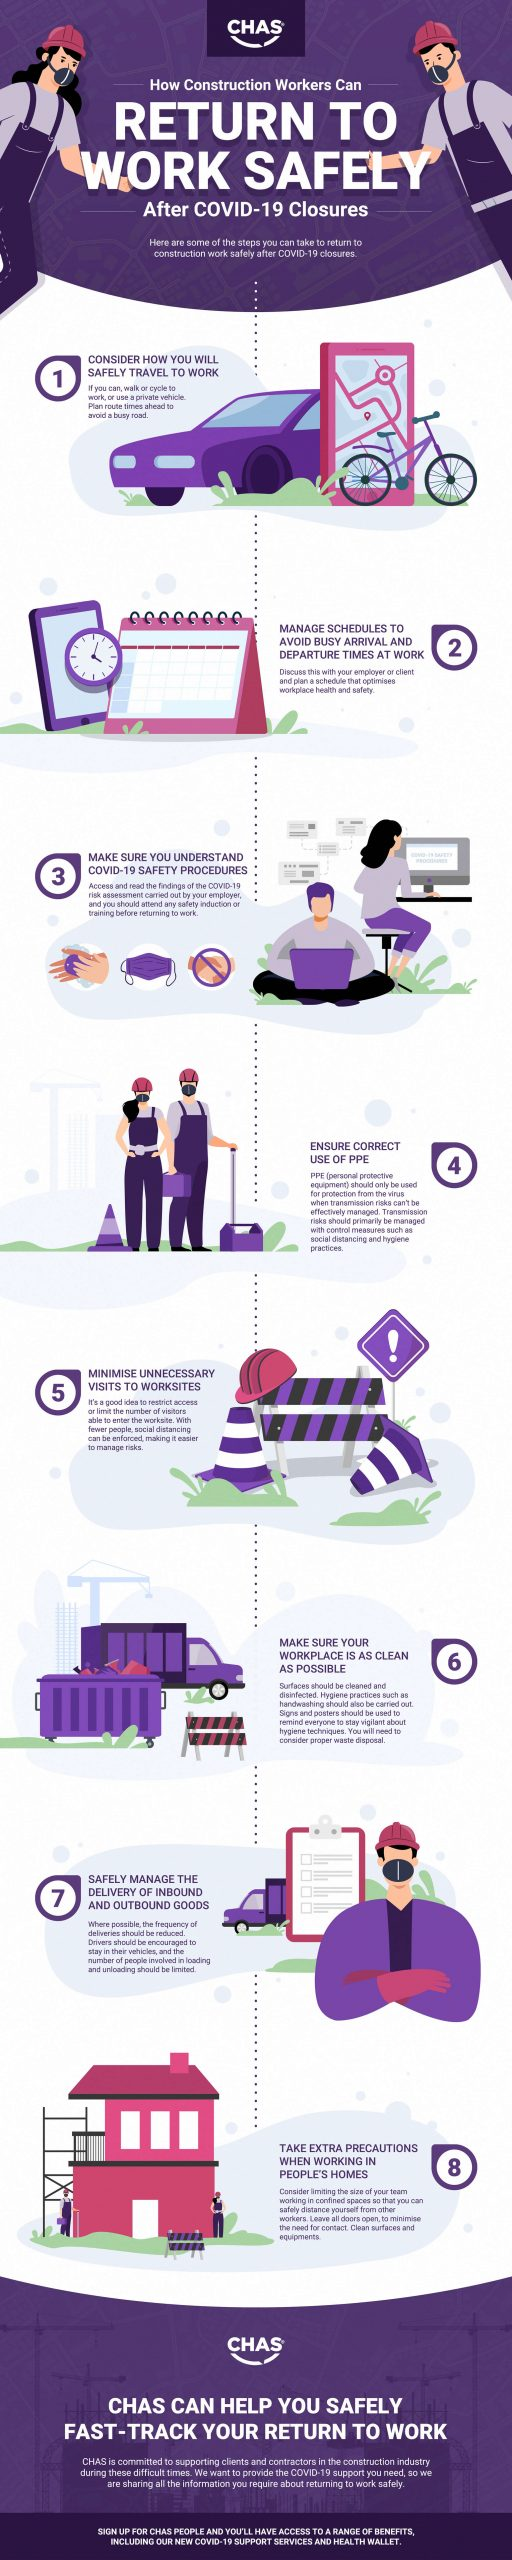 CHAS Infographic on how construction workers can return to work safely after Covid-19 closures